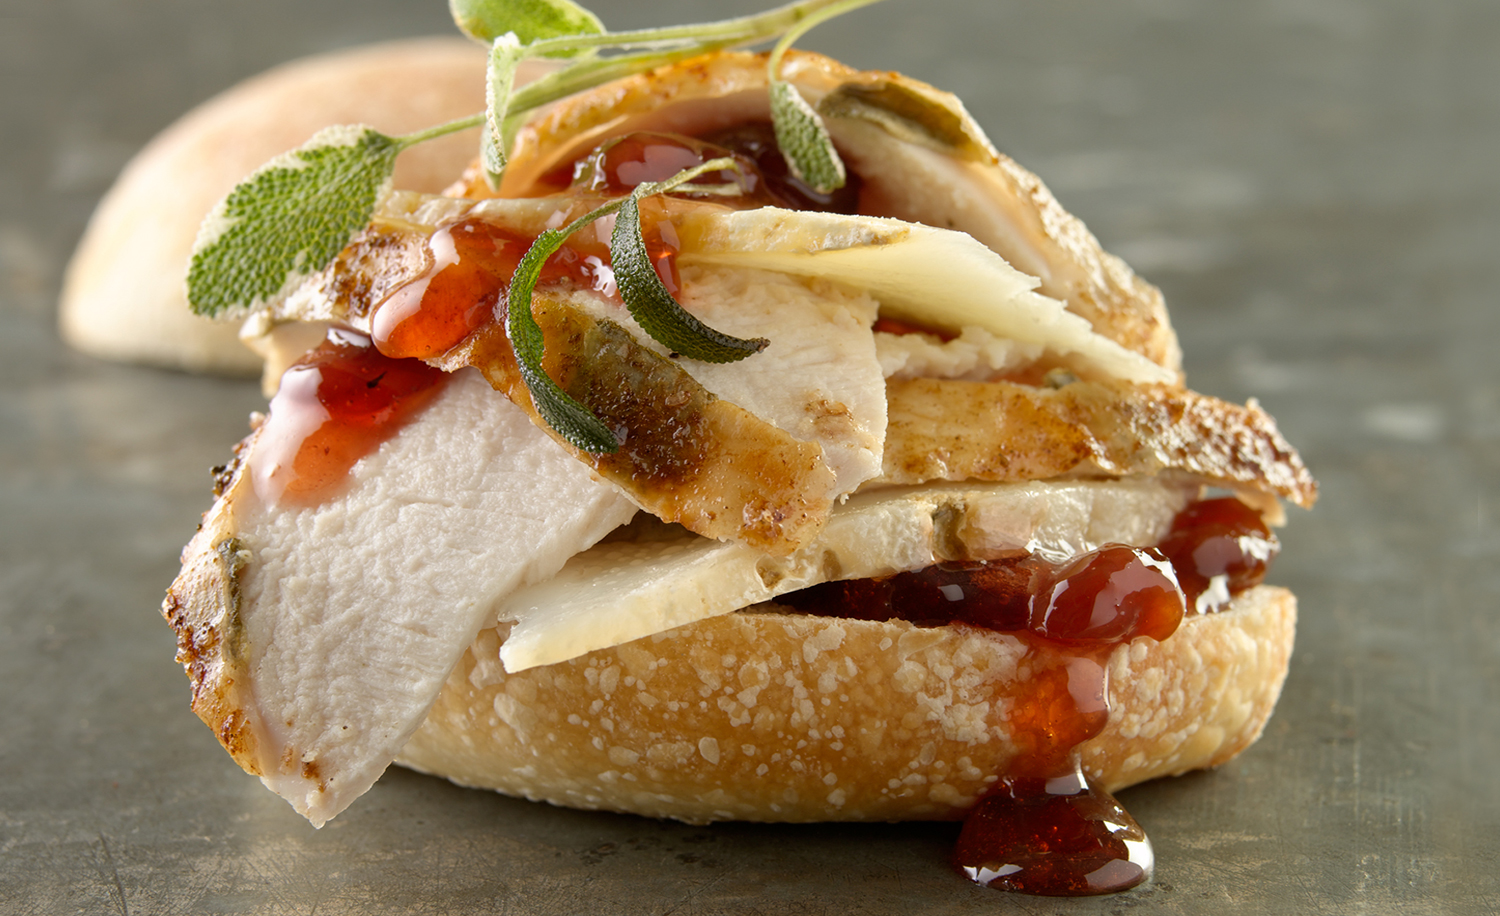 Carved Chicken Ciabatta Sandwich | Tony Kubat Photography